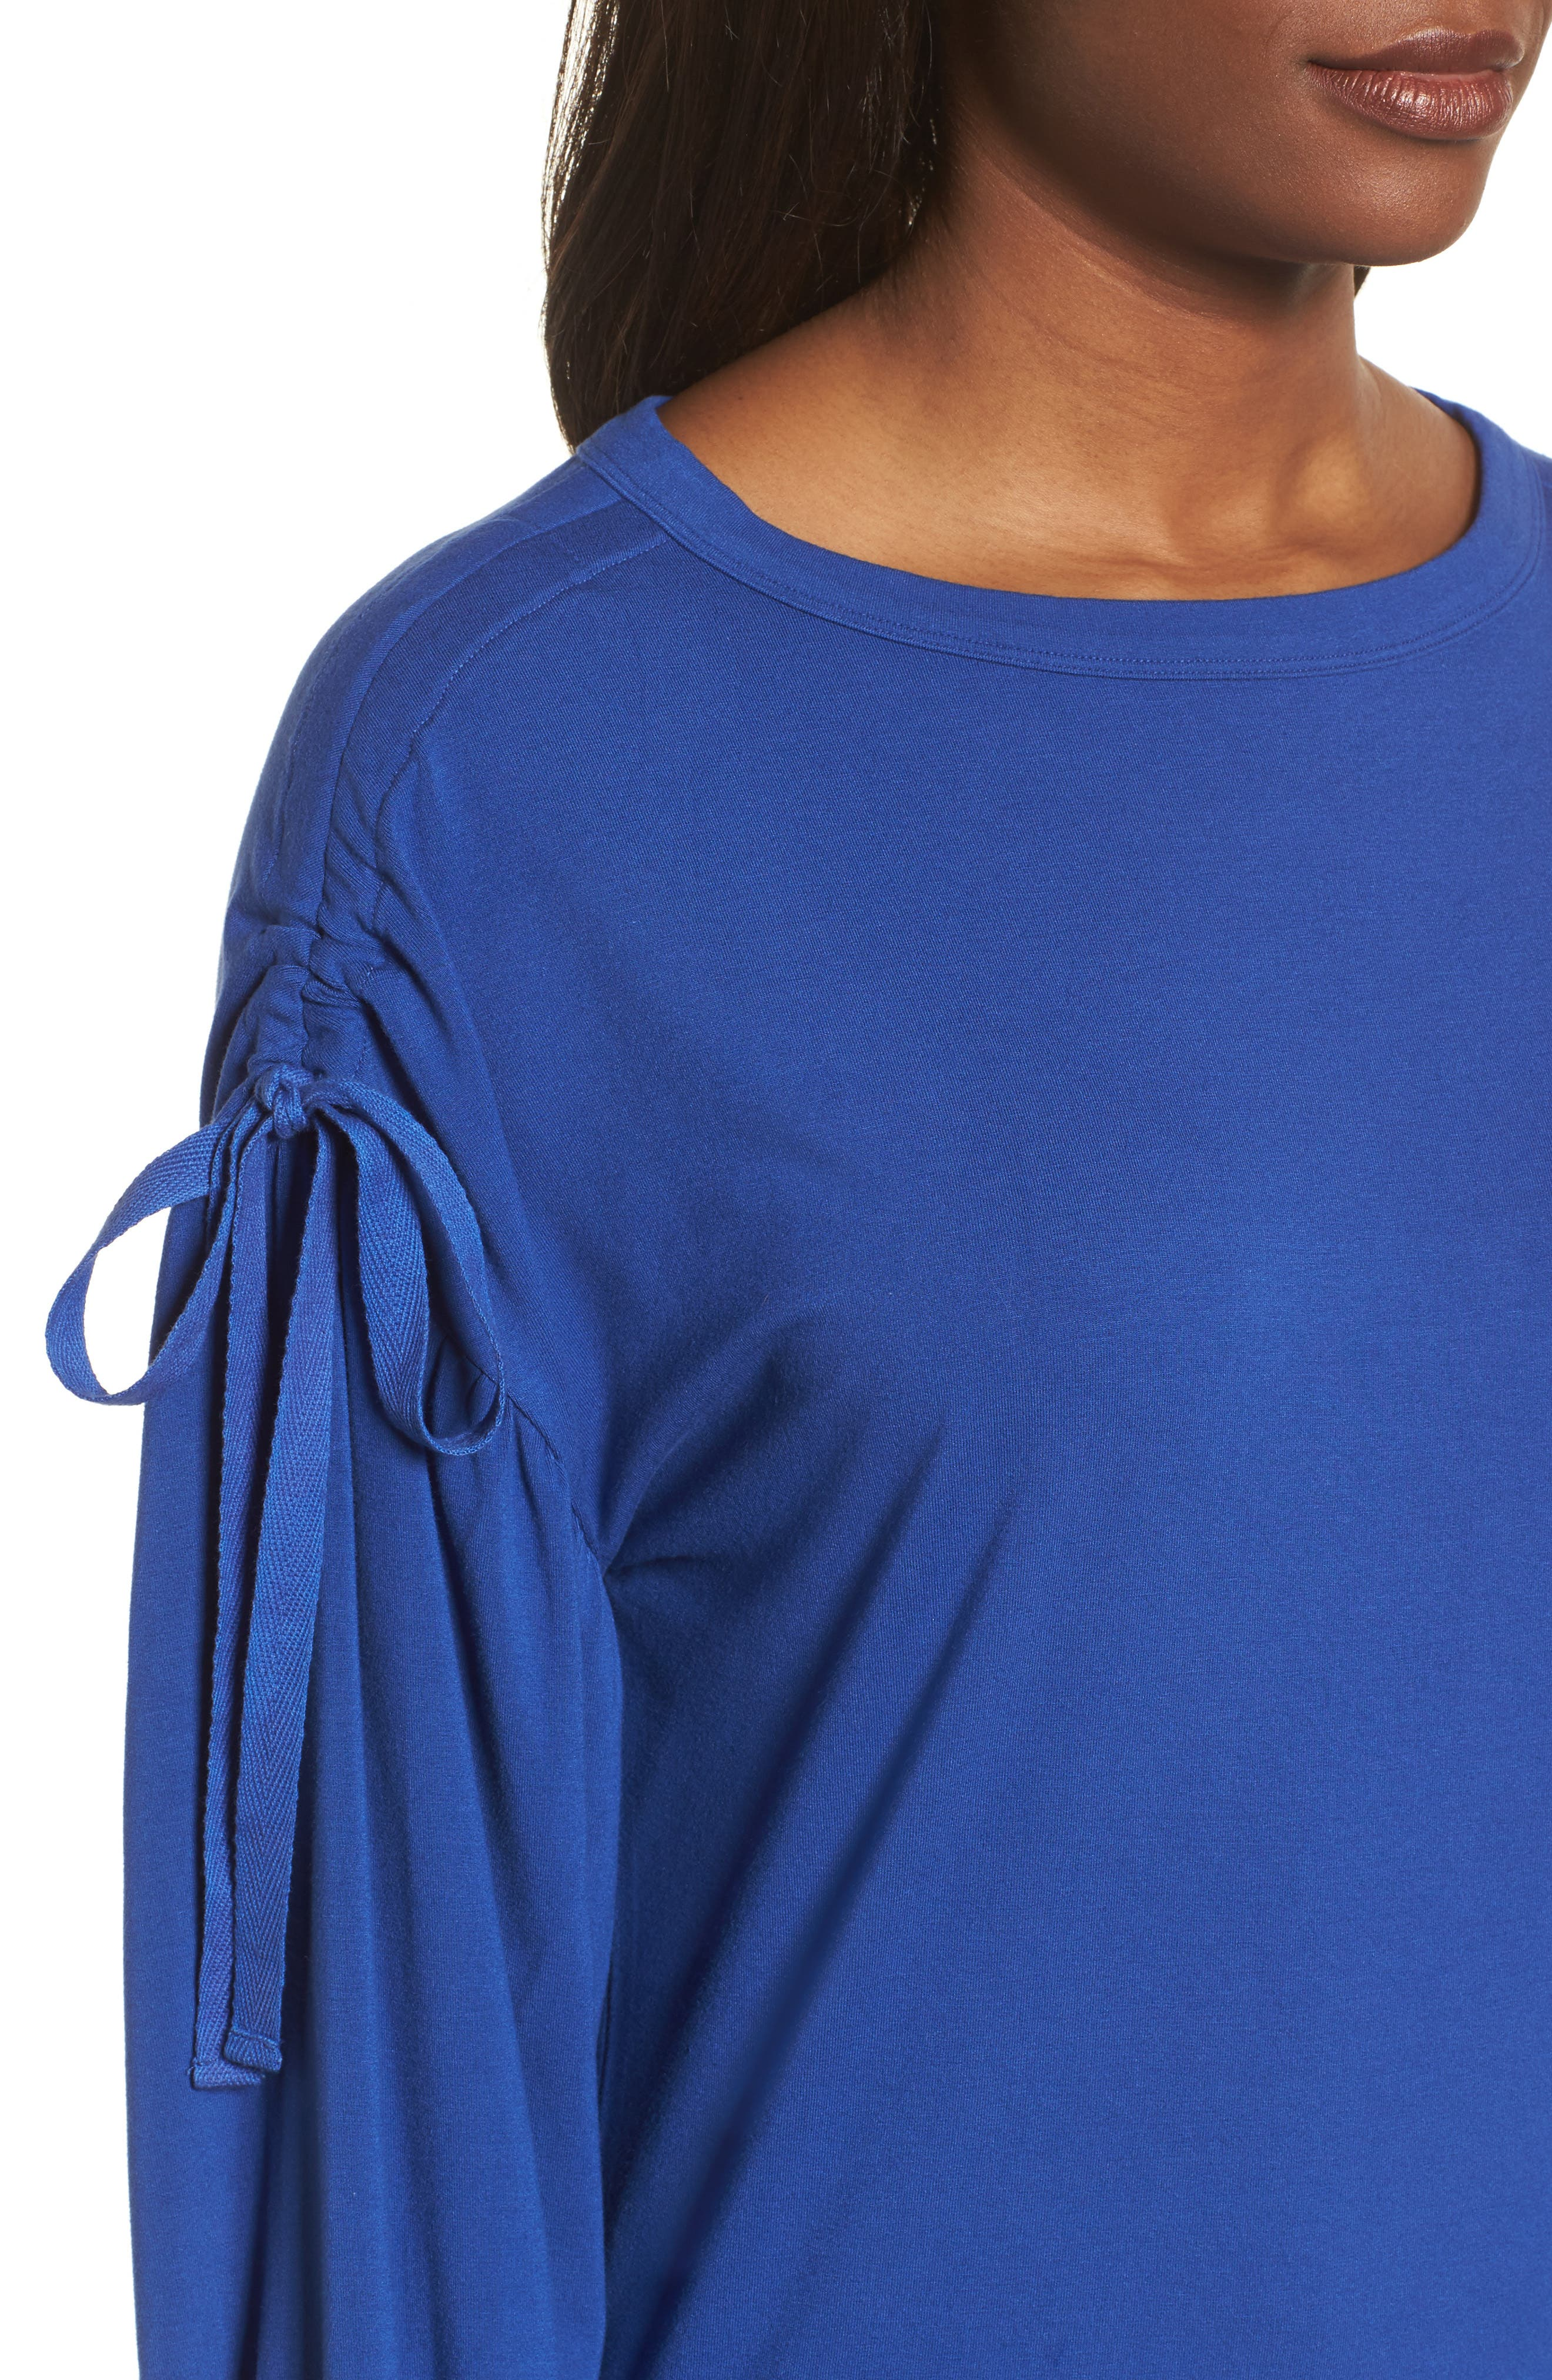 Ruched Bow Sleeve Top,                             Alternate thumbnail 15, color,